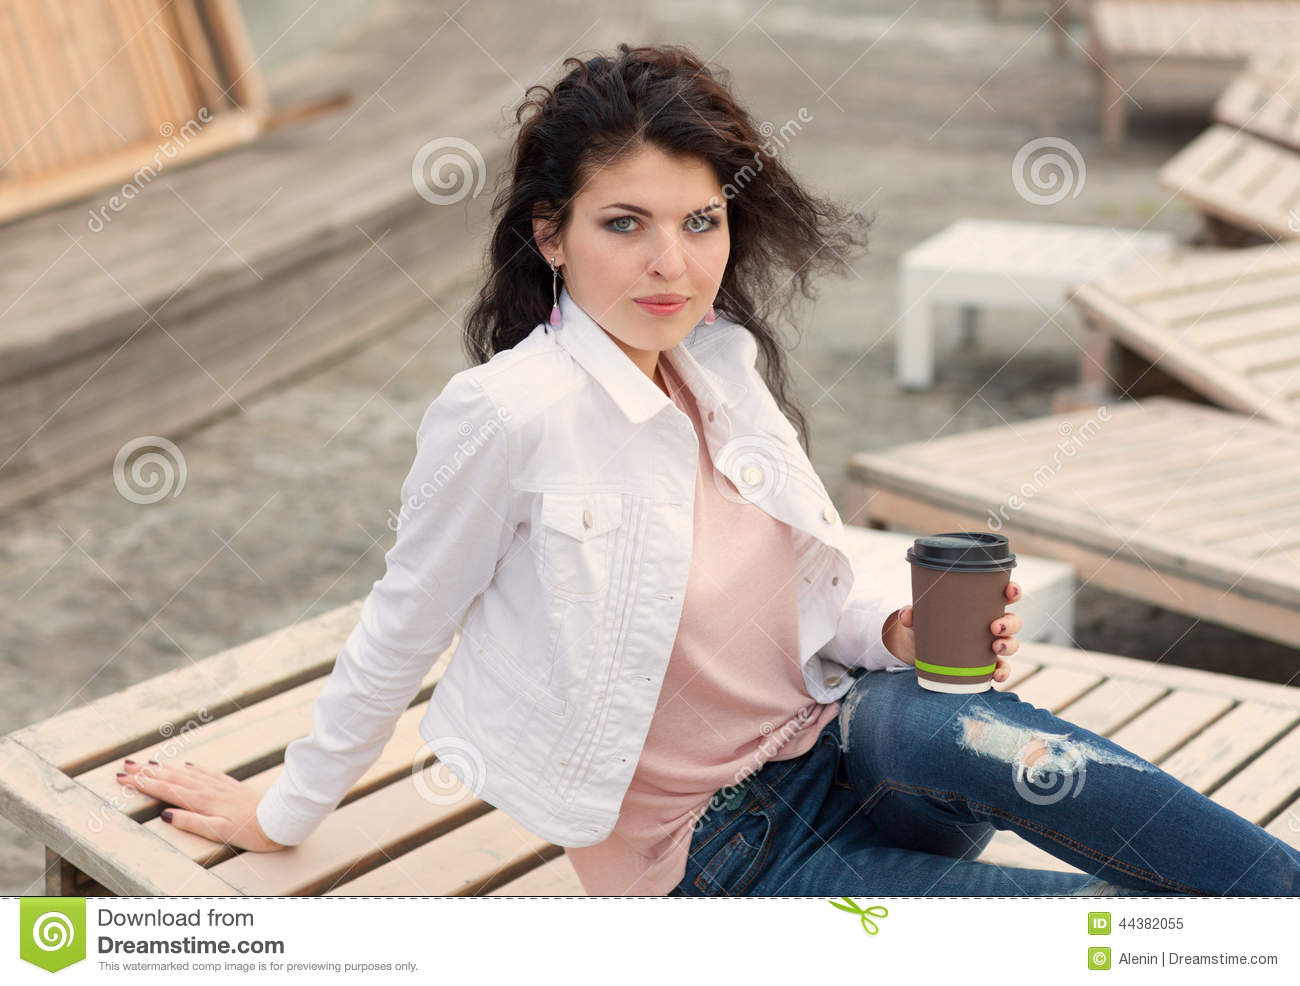 Beautiful Tall Girl With Long Hair Brunette In Jeans Standing On Old ...